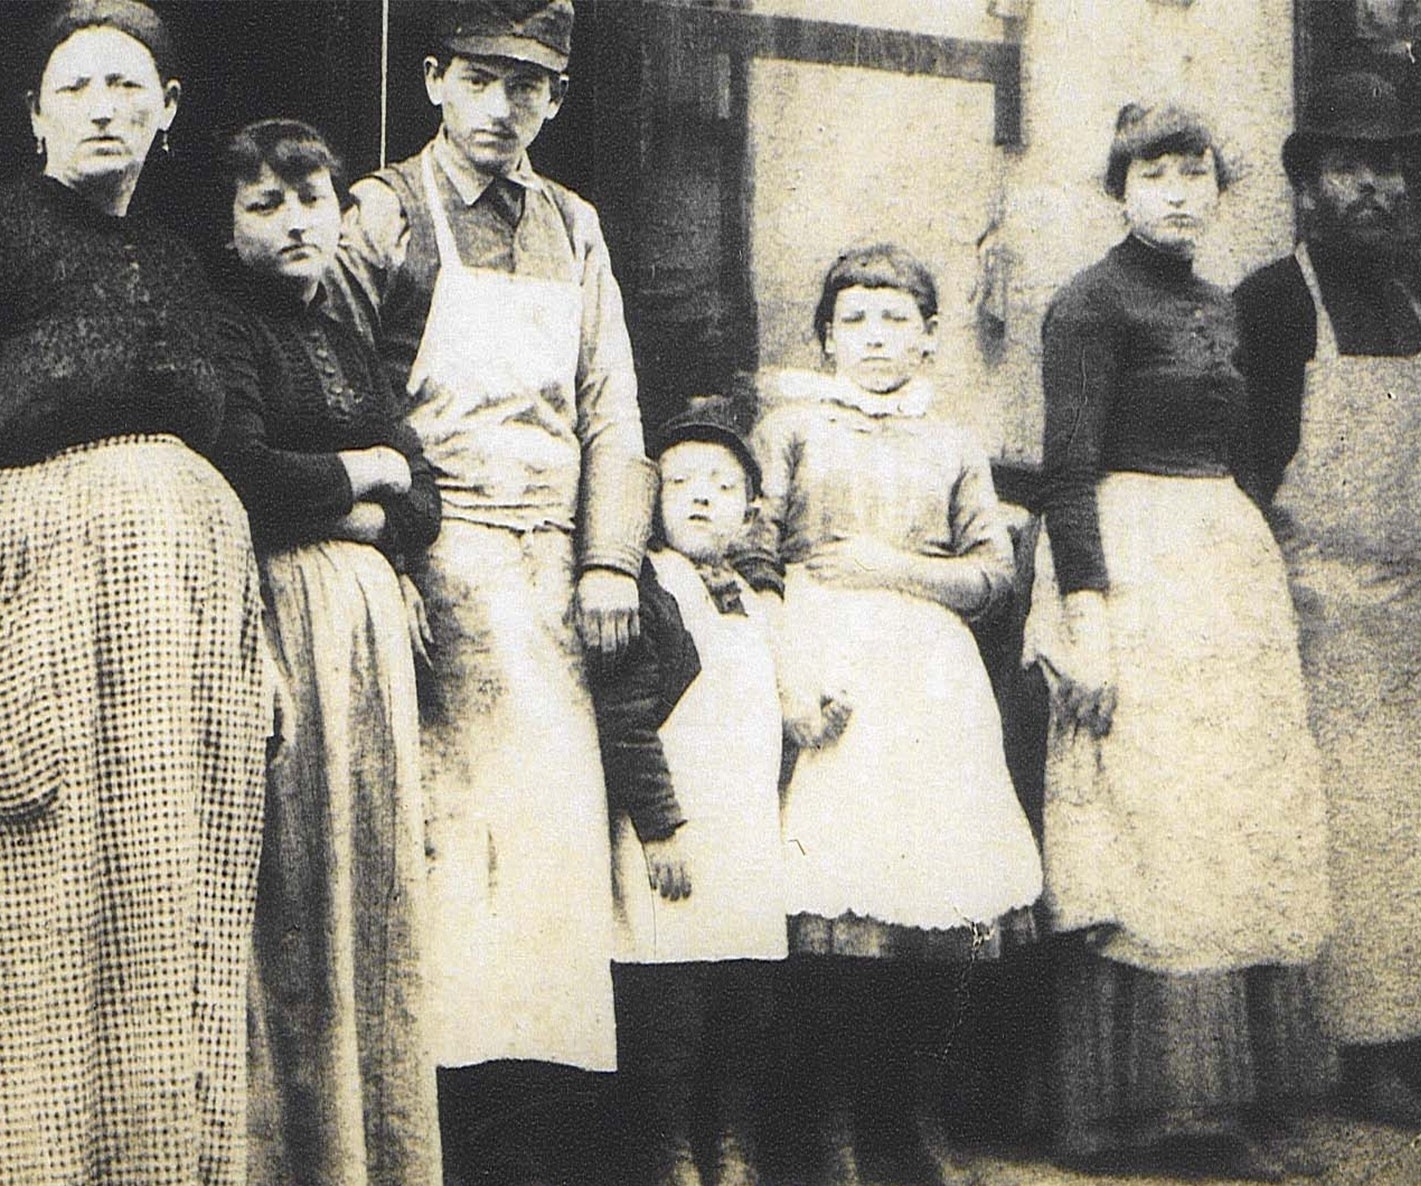 Black and white photo of 7 members of the Lustgarten family with the women and girls in skirts and the men and boys in aprons